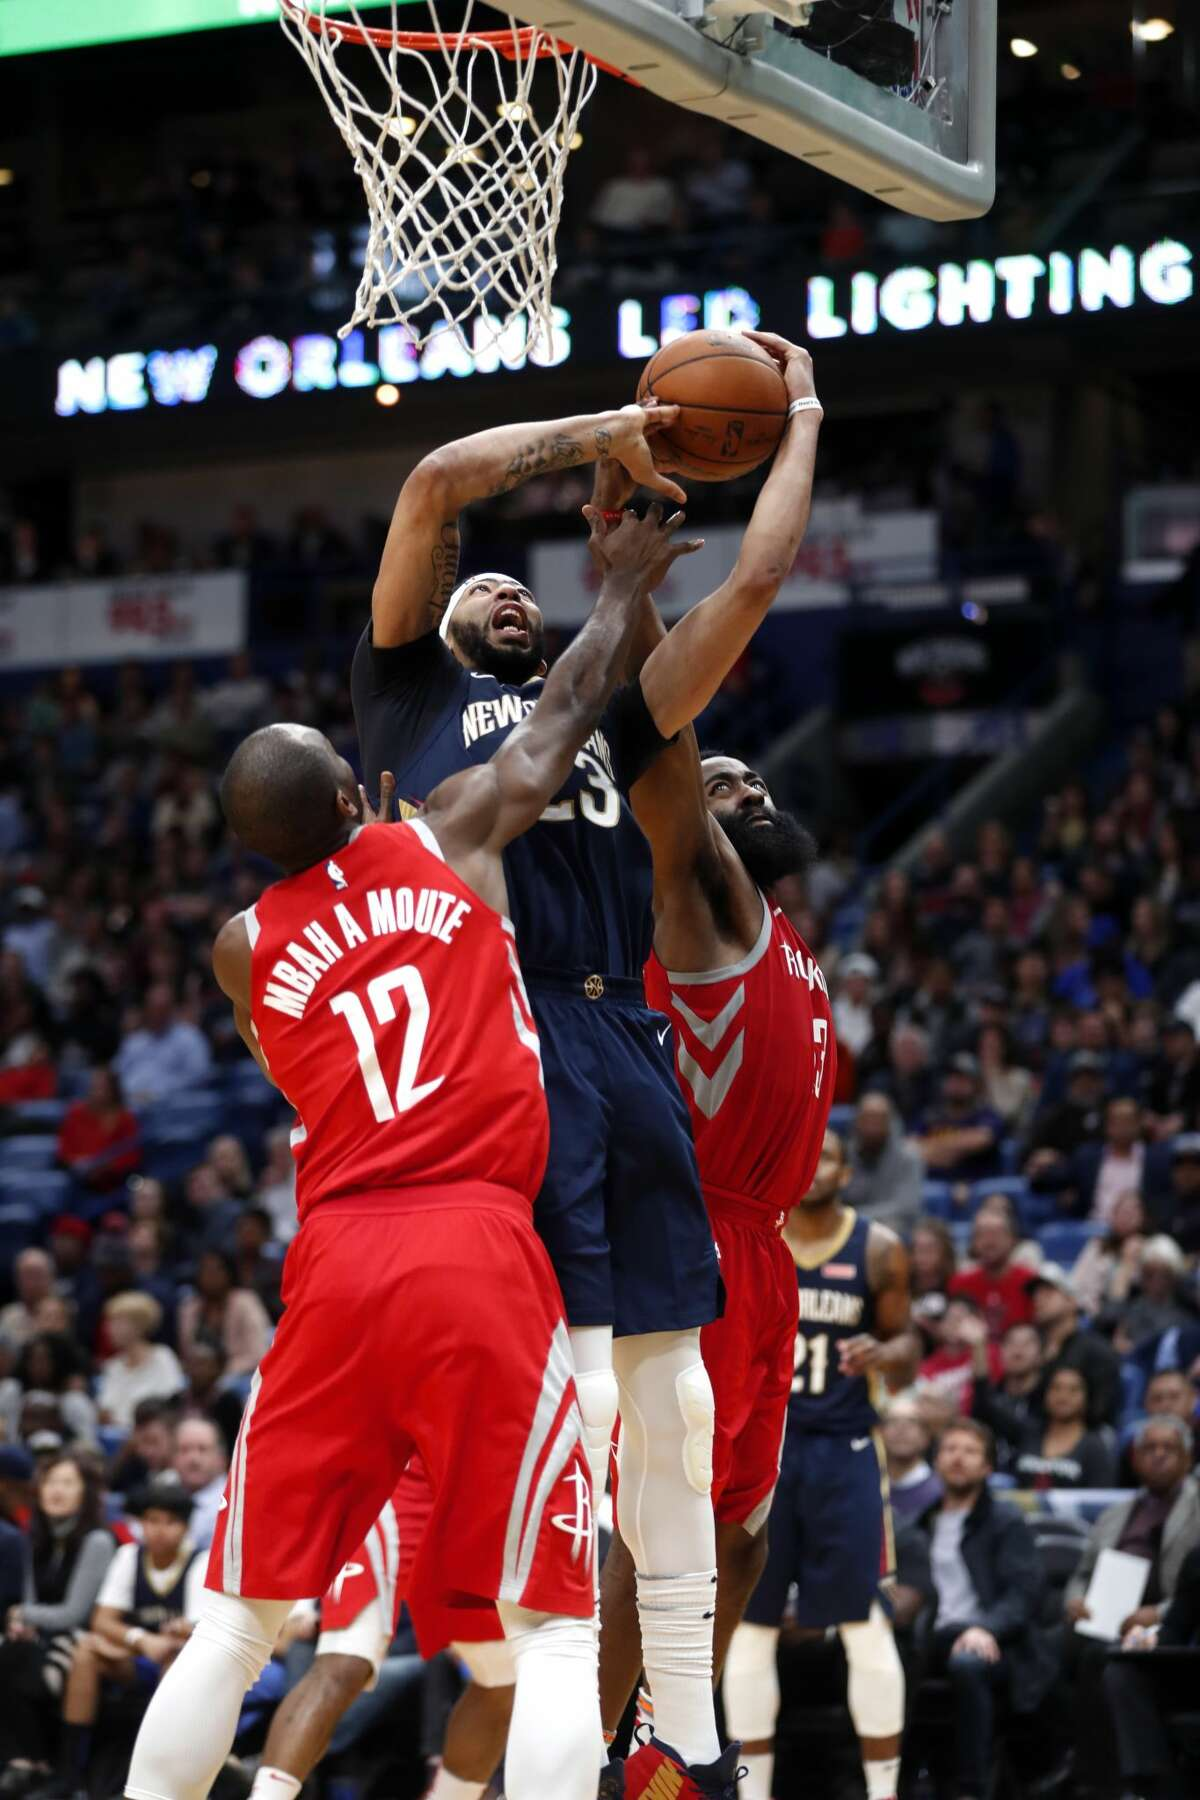 New Orleans Pelicans forward Anthony Davis (23) battles under the basket between Houston Rockets forward Luc Mbah a Moute (12) and guard James Harden in the second half of an NBA basketball game in New Orleans, Friday, Jan. 26, 2018. The Pelicans won 115-113. (AP Photo/Gerald Herbert)